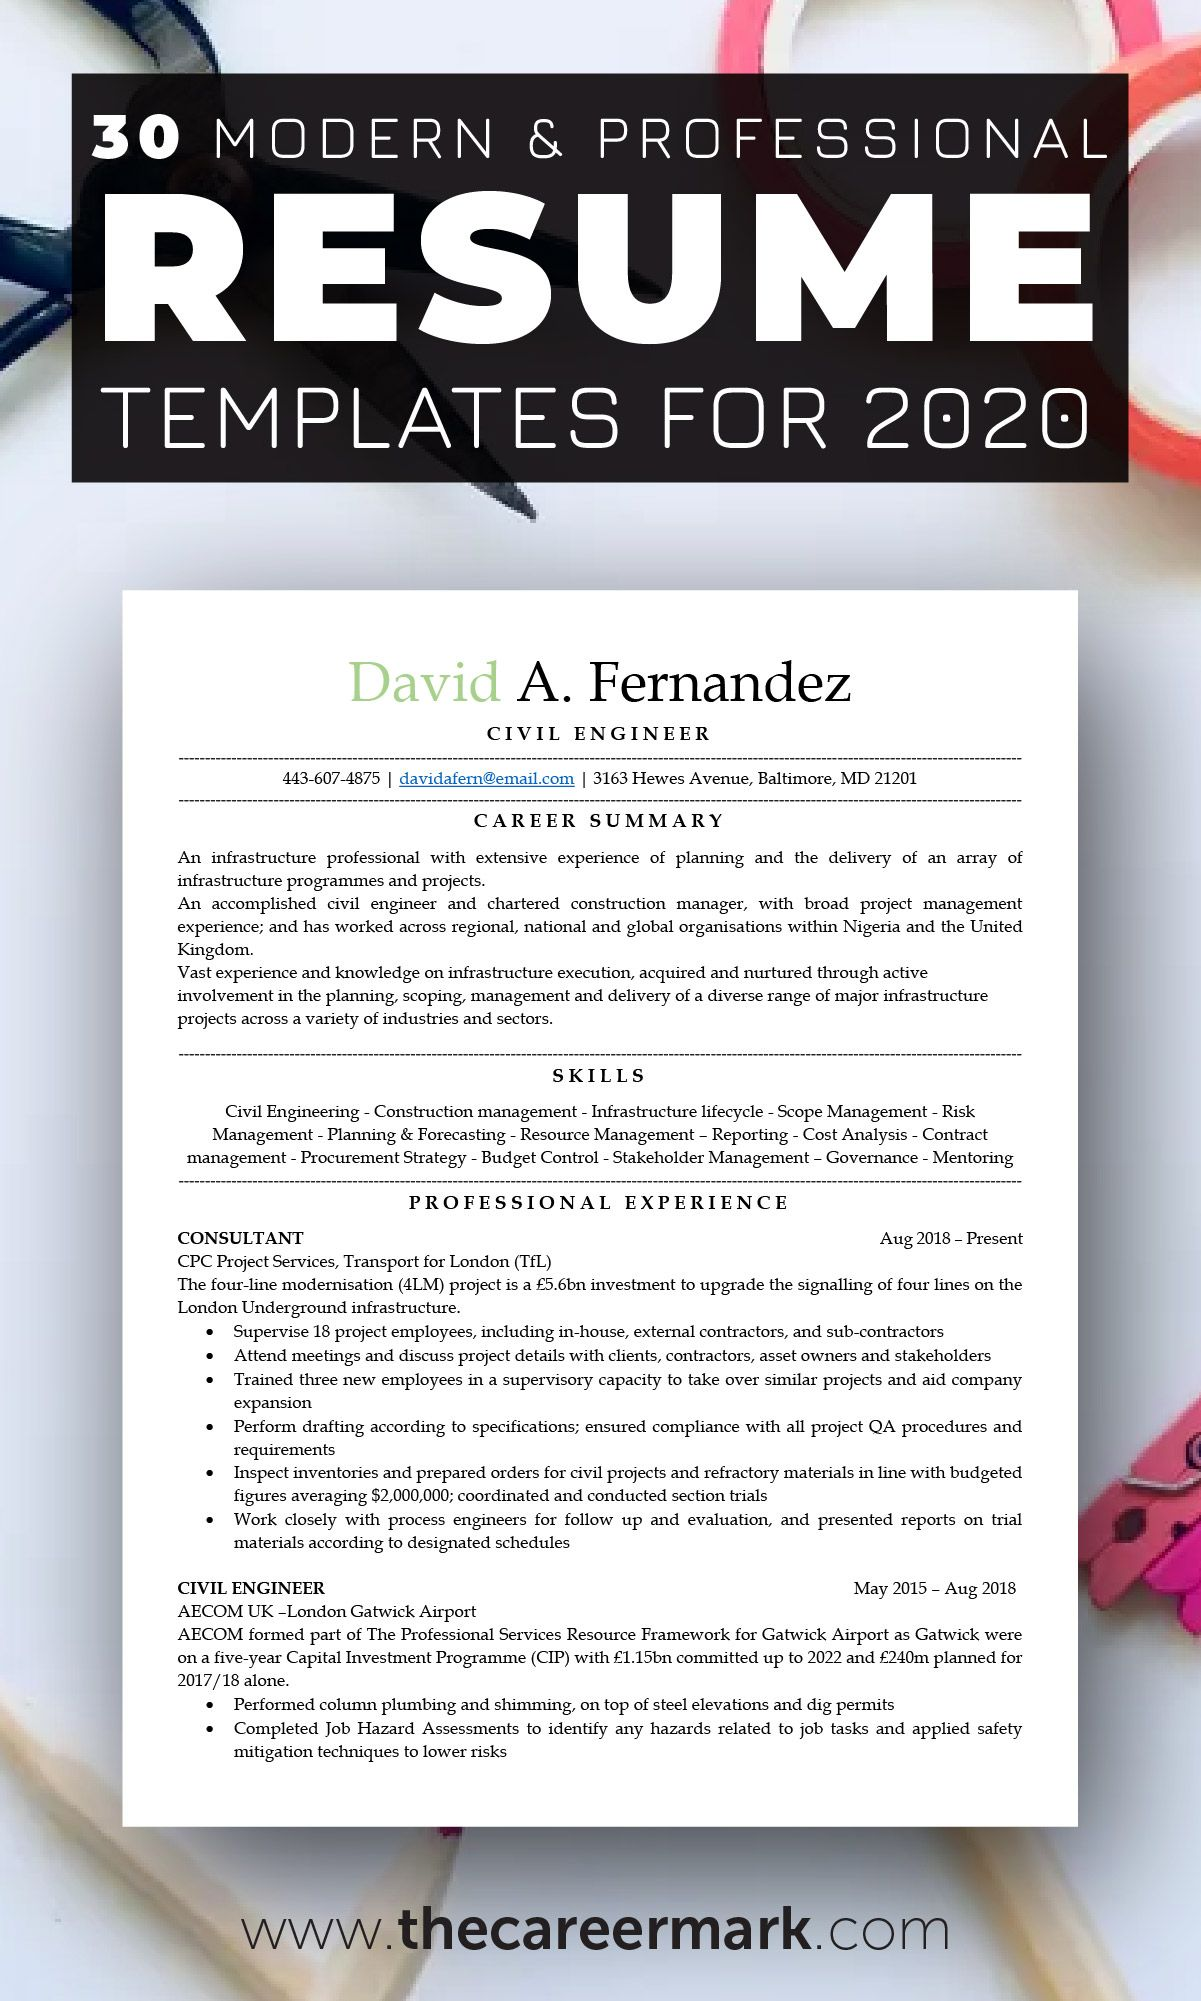 17+ Outside sales resume examples 2020 ideas